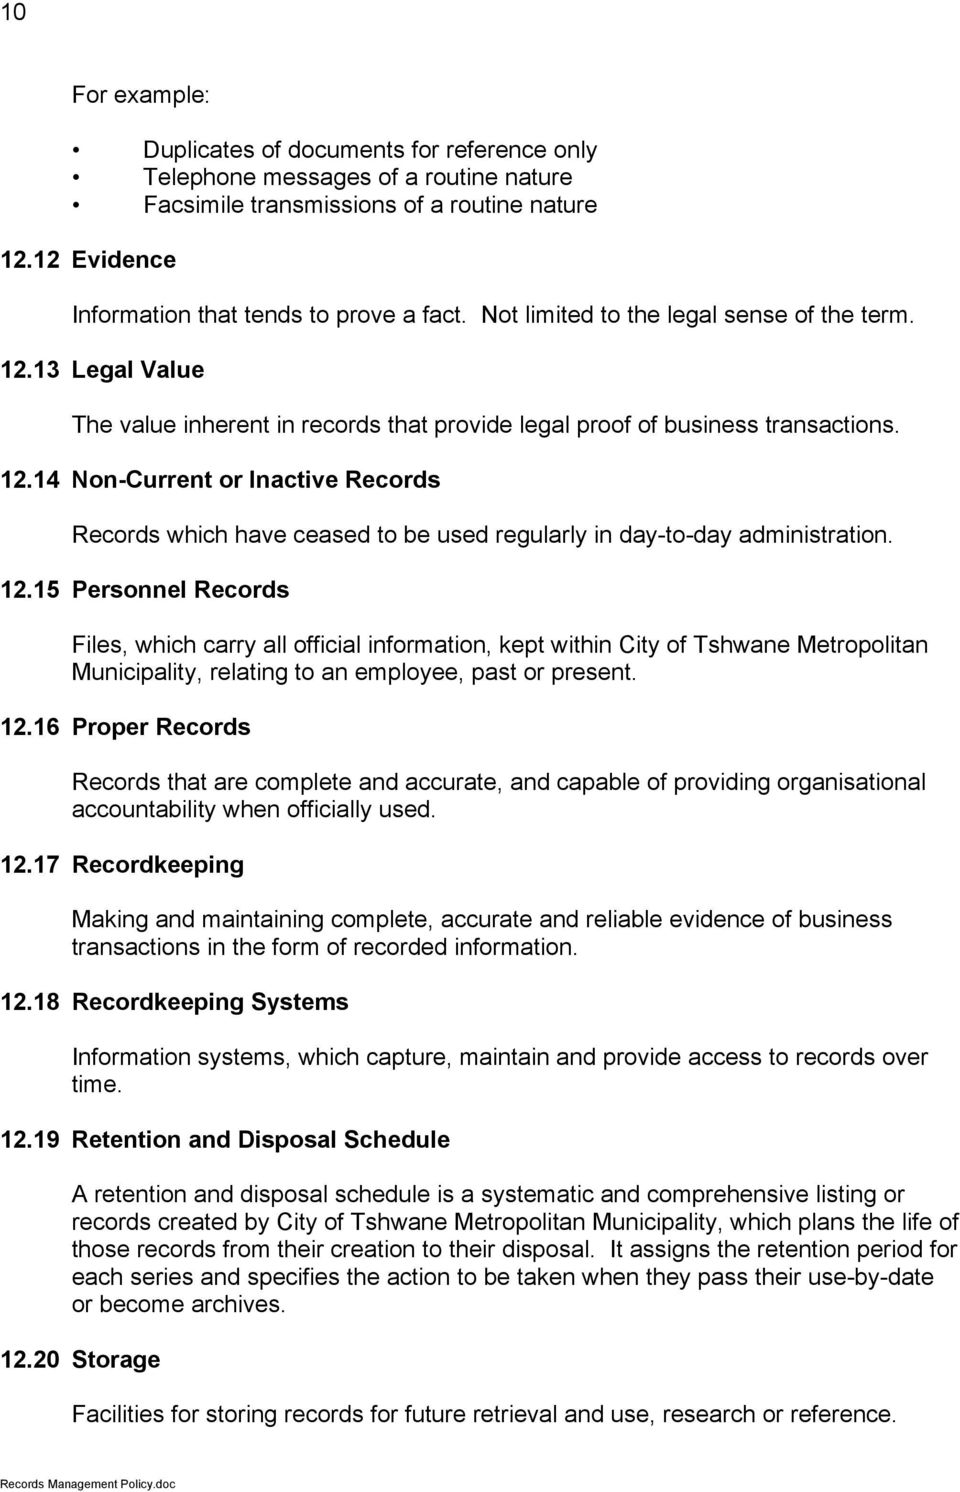 12.15 Personnel Records Files, which carry all official information, kept within City of Tshwane Metropolitan Municipality, relating to an employee, past or present. 12.